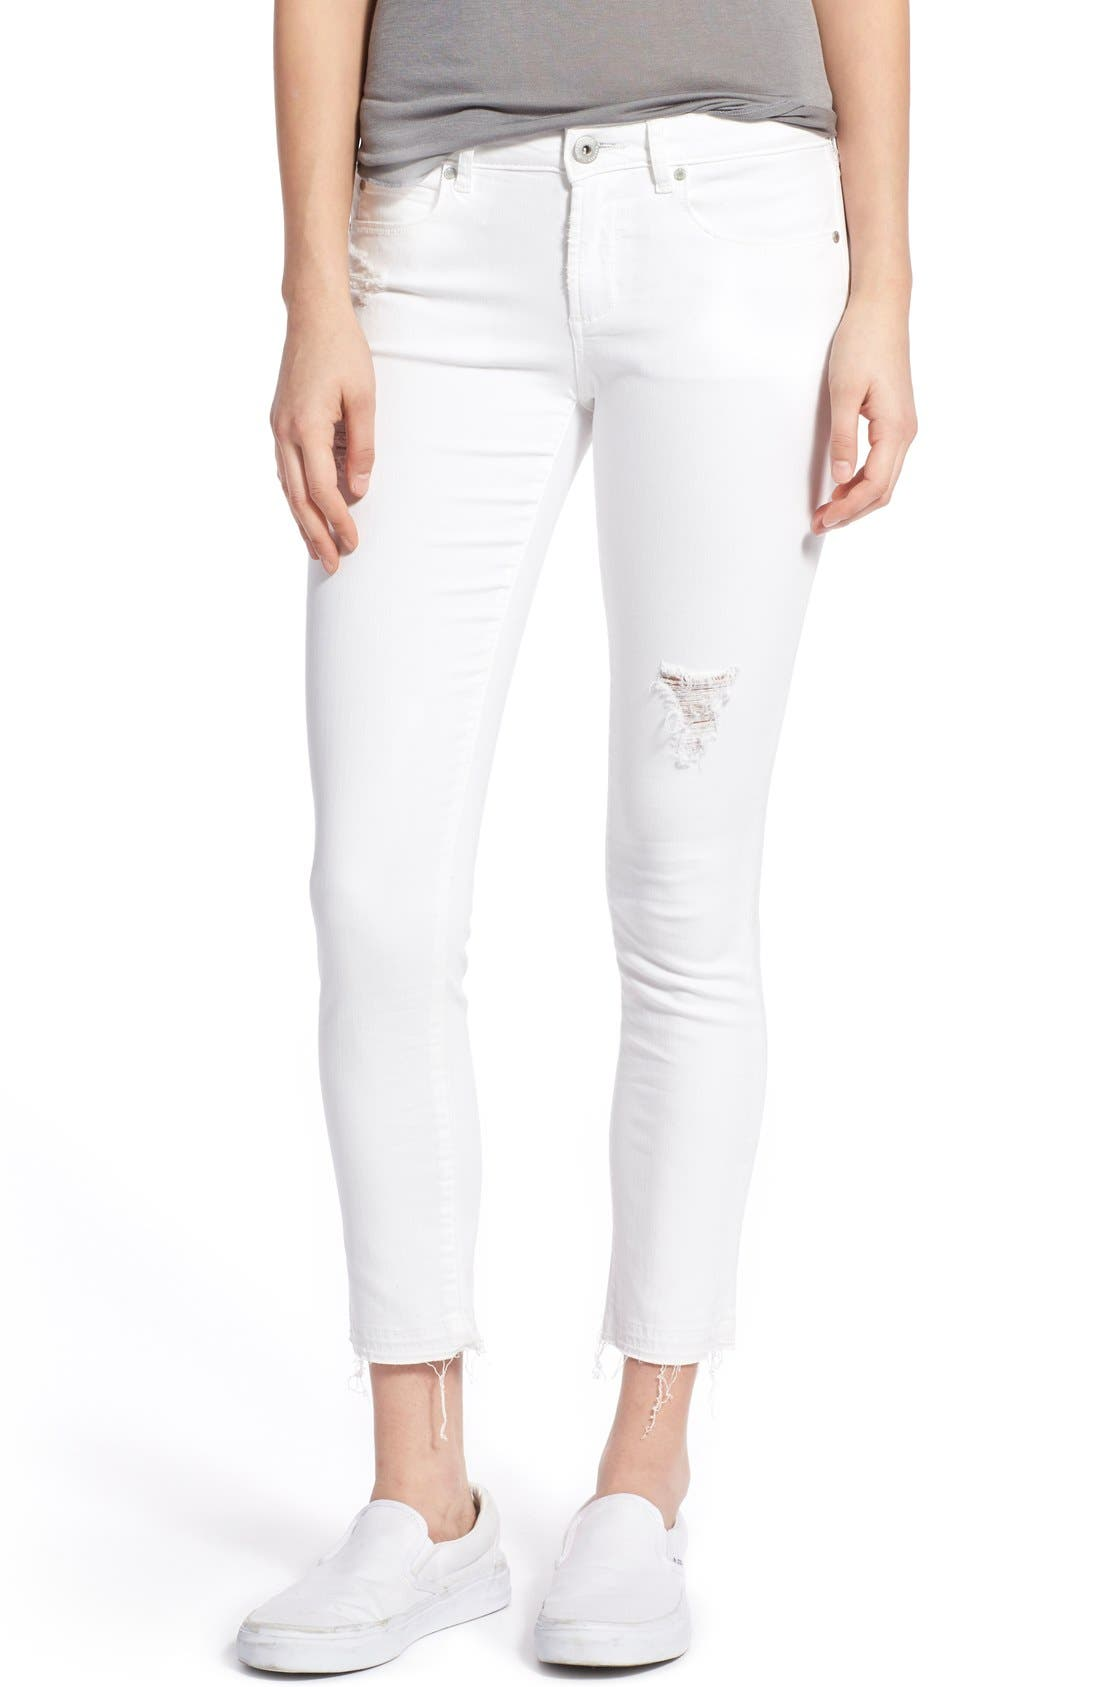 Main Image - Articles of Society 'Carly' Frayed Hem Crop Skinny Jeans (Worn White)